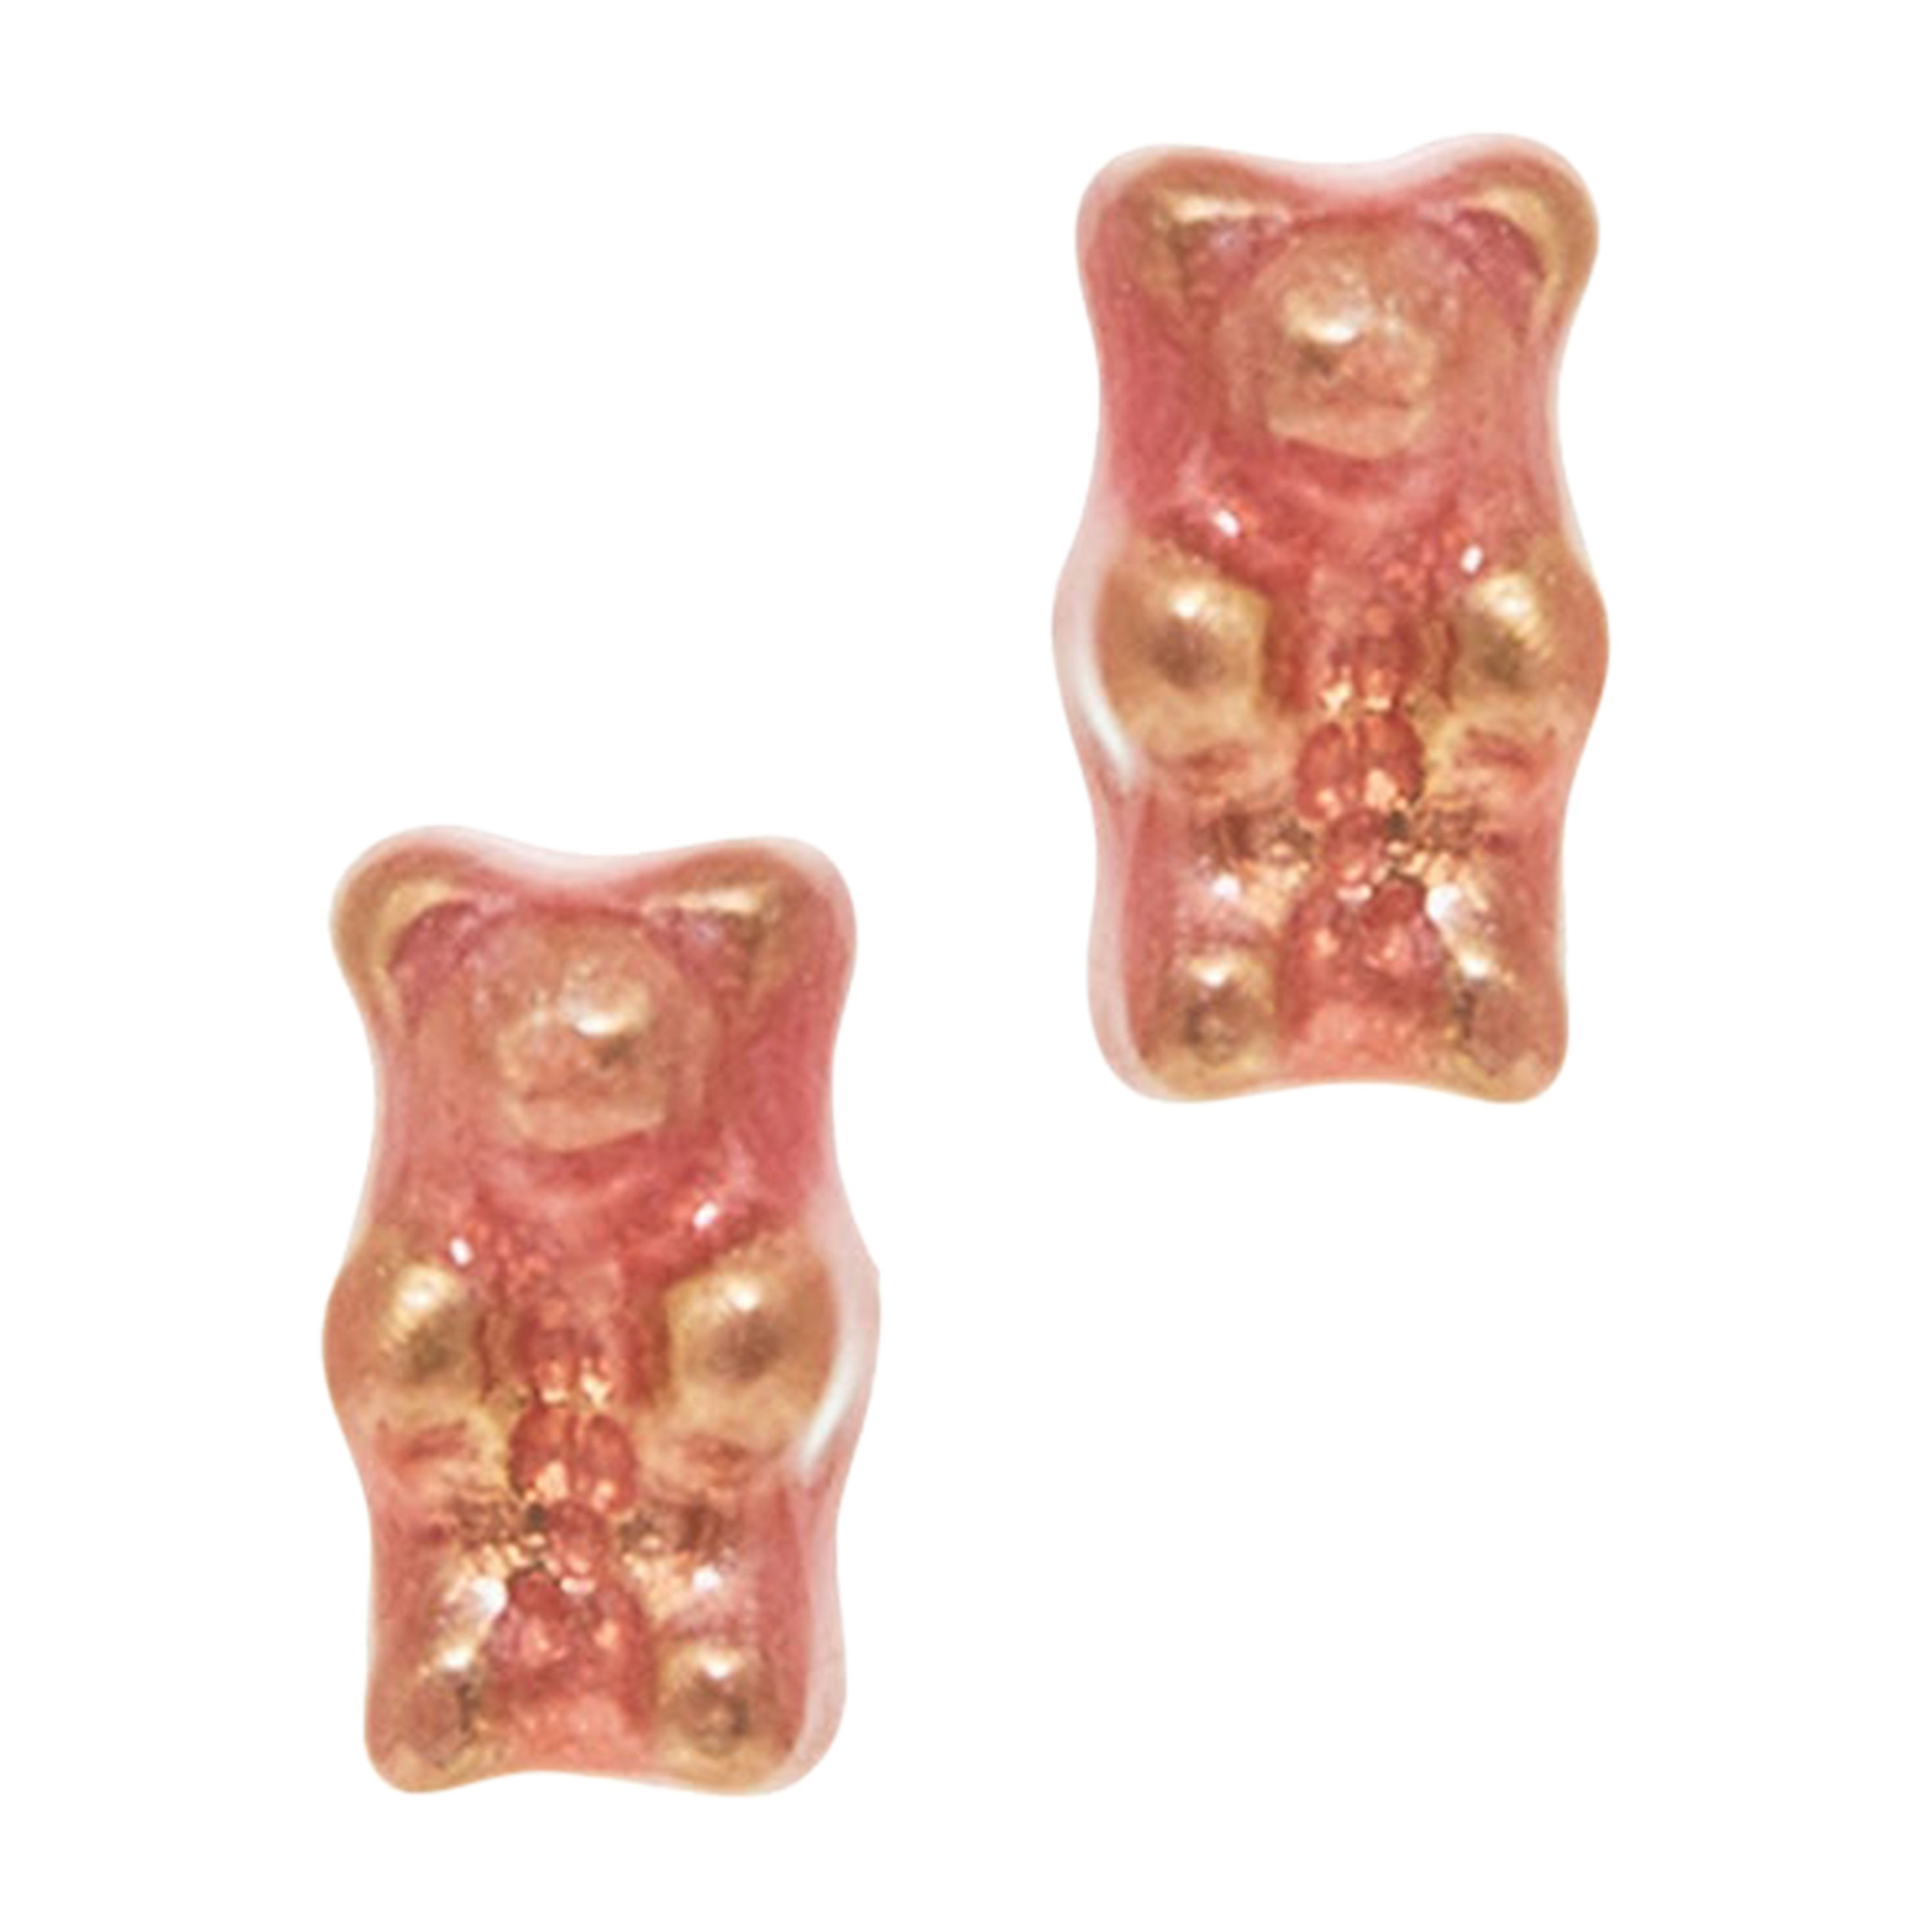 Studs Earrings Gummy Bears Pink  Gift 18k Gold-Plated Silver Greek Jewelry